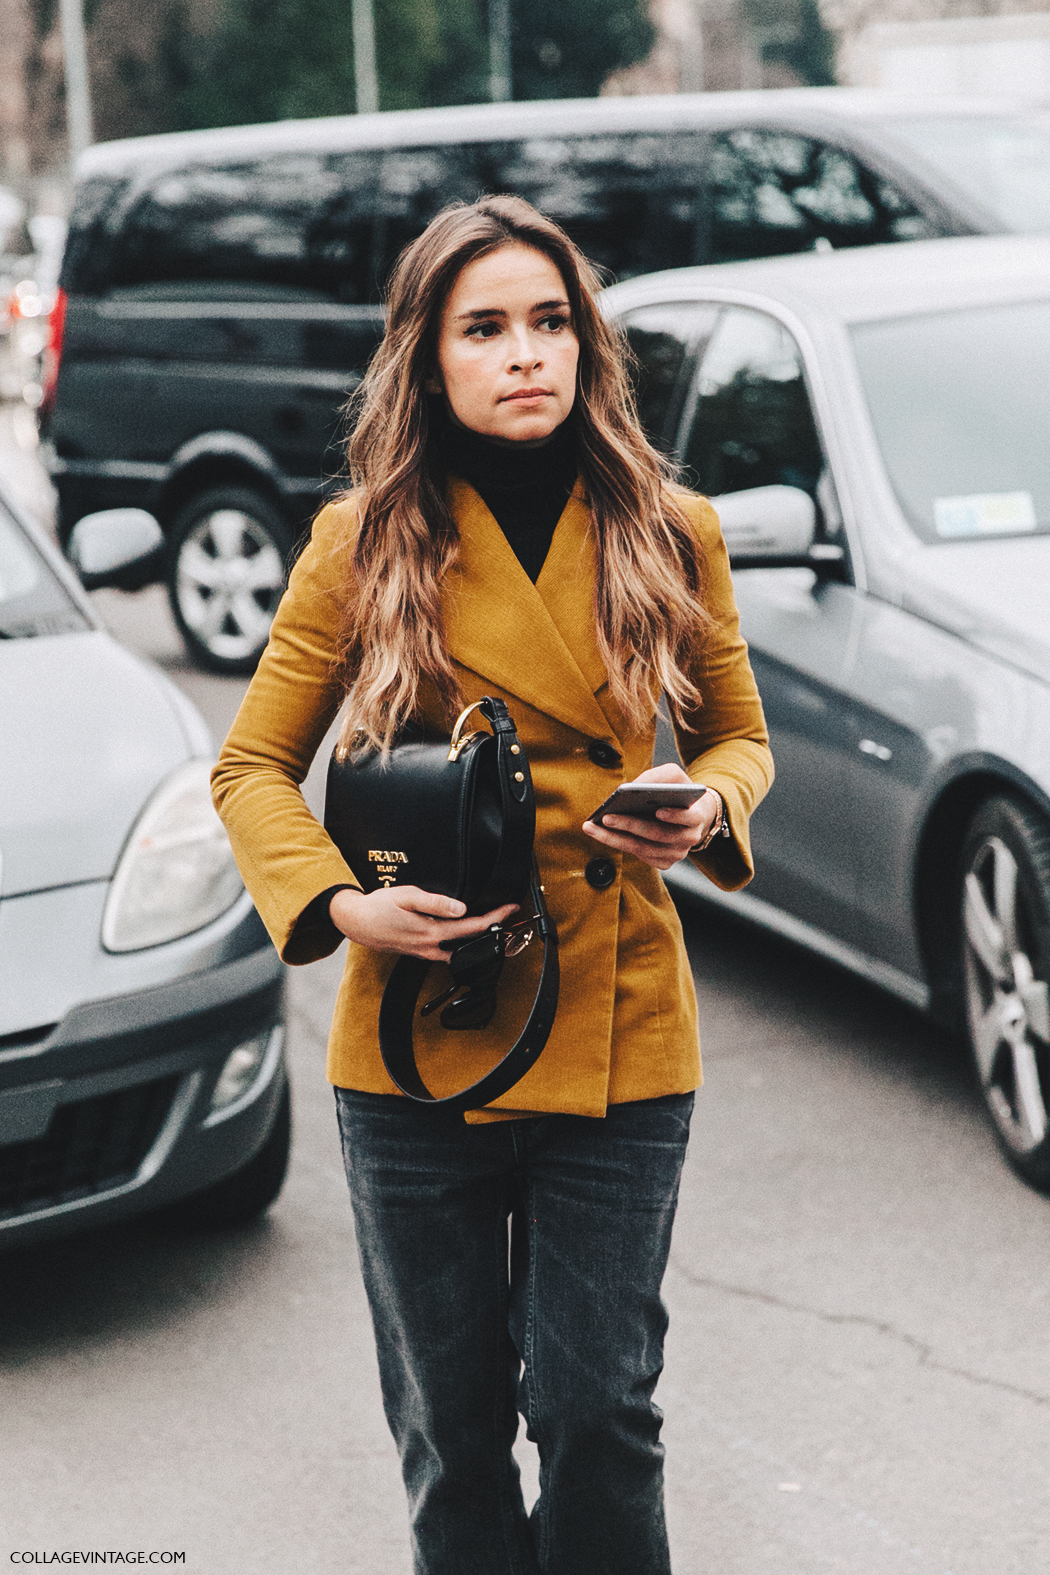 Milan_Fashion_Week_Fall_16-MFW-Street_Style-Collage_Vintage-Miroslava_Duma-Prada_Bag-1